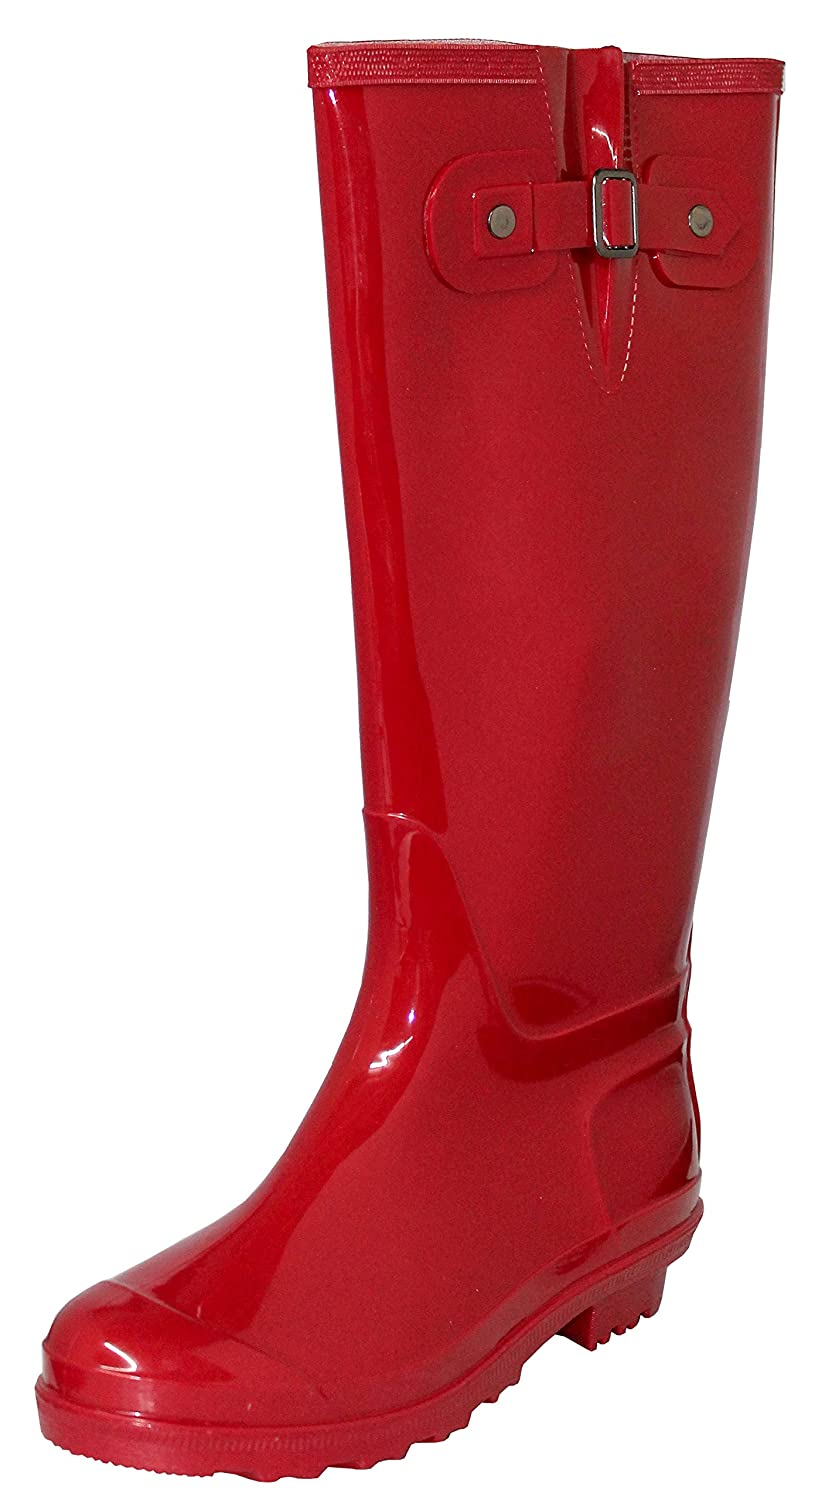 Women's Rubber Waterproof Rain Boots, 15 1/2 Inches B01N1G6BNH 9 B(M) US|Red